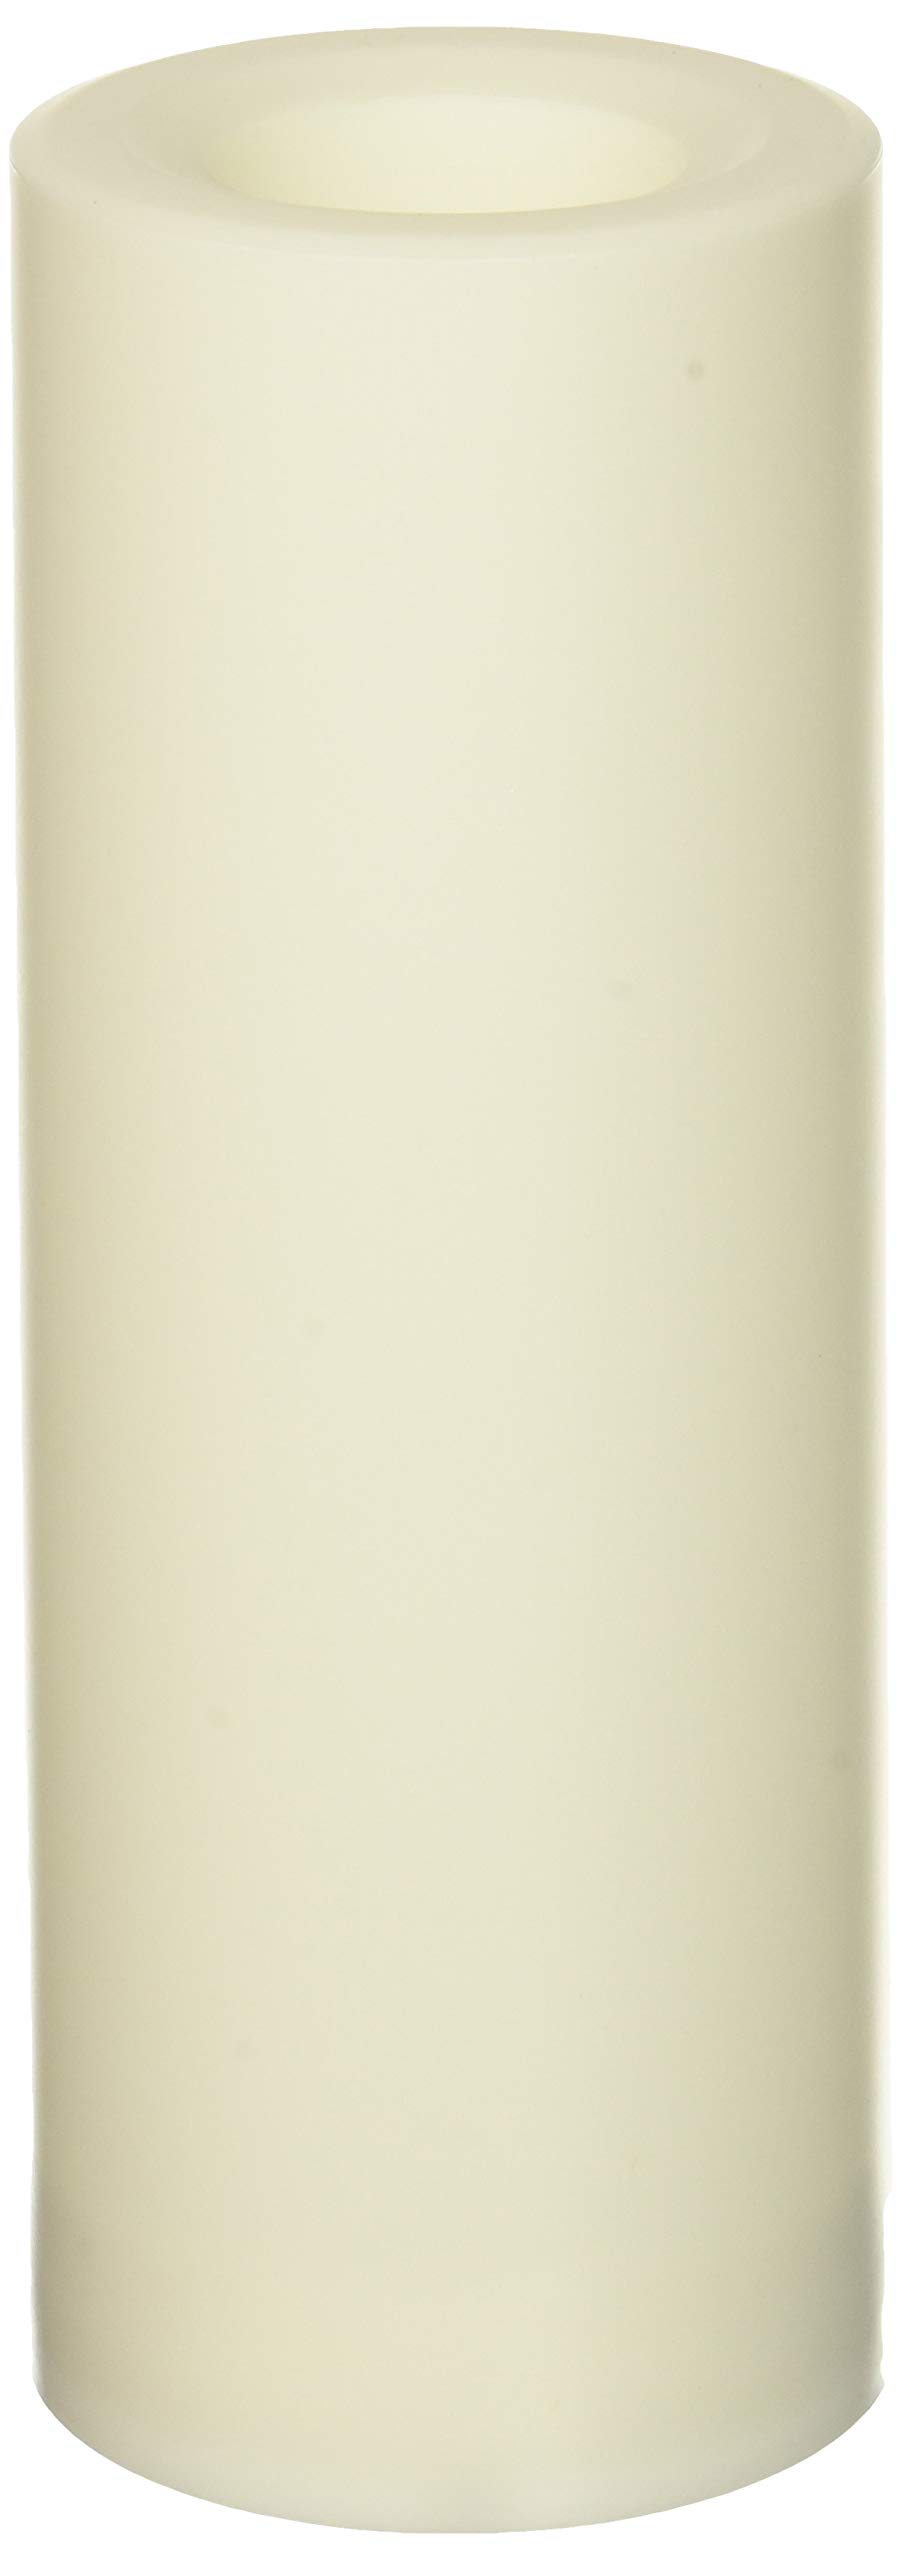 STERNO HOME CGT20308WH Inglow White Outdoor Battery Operated Candle